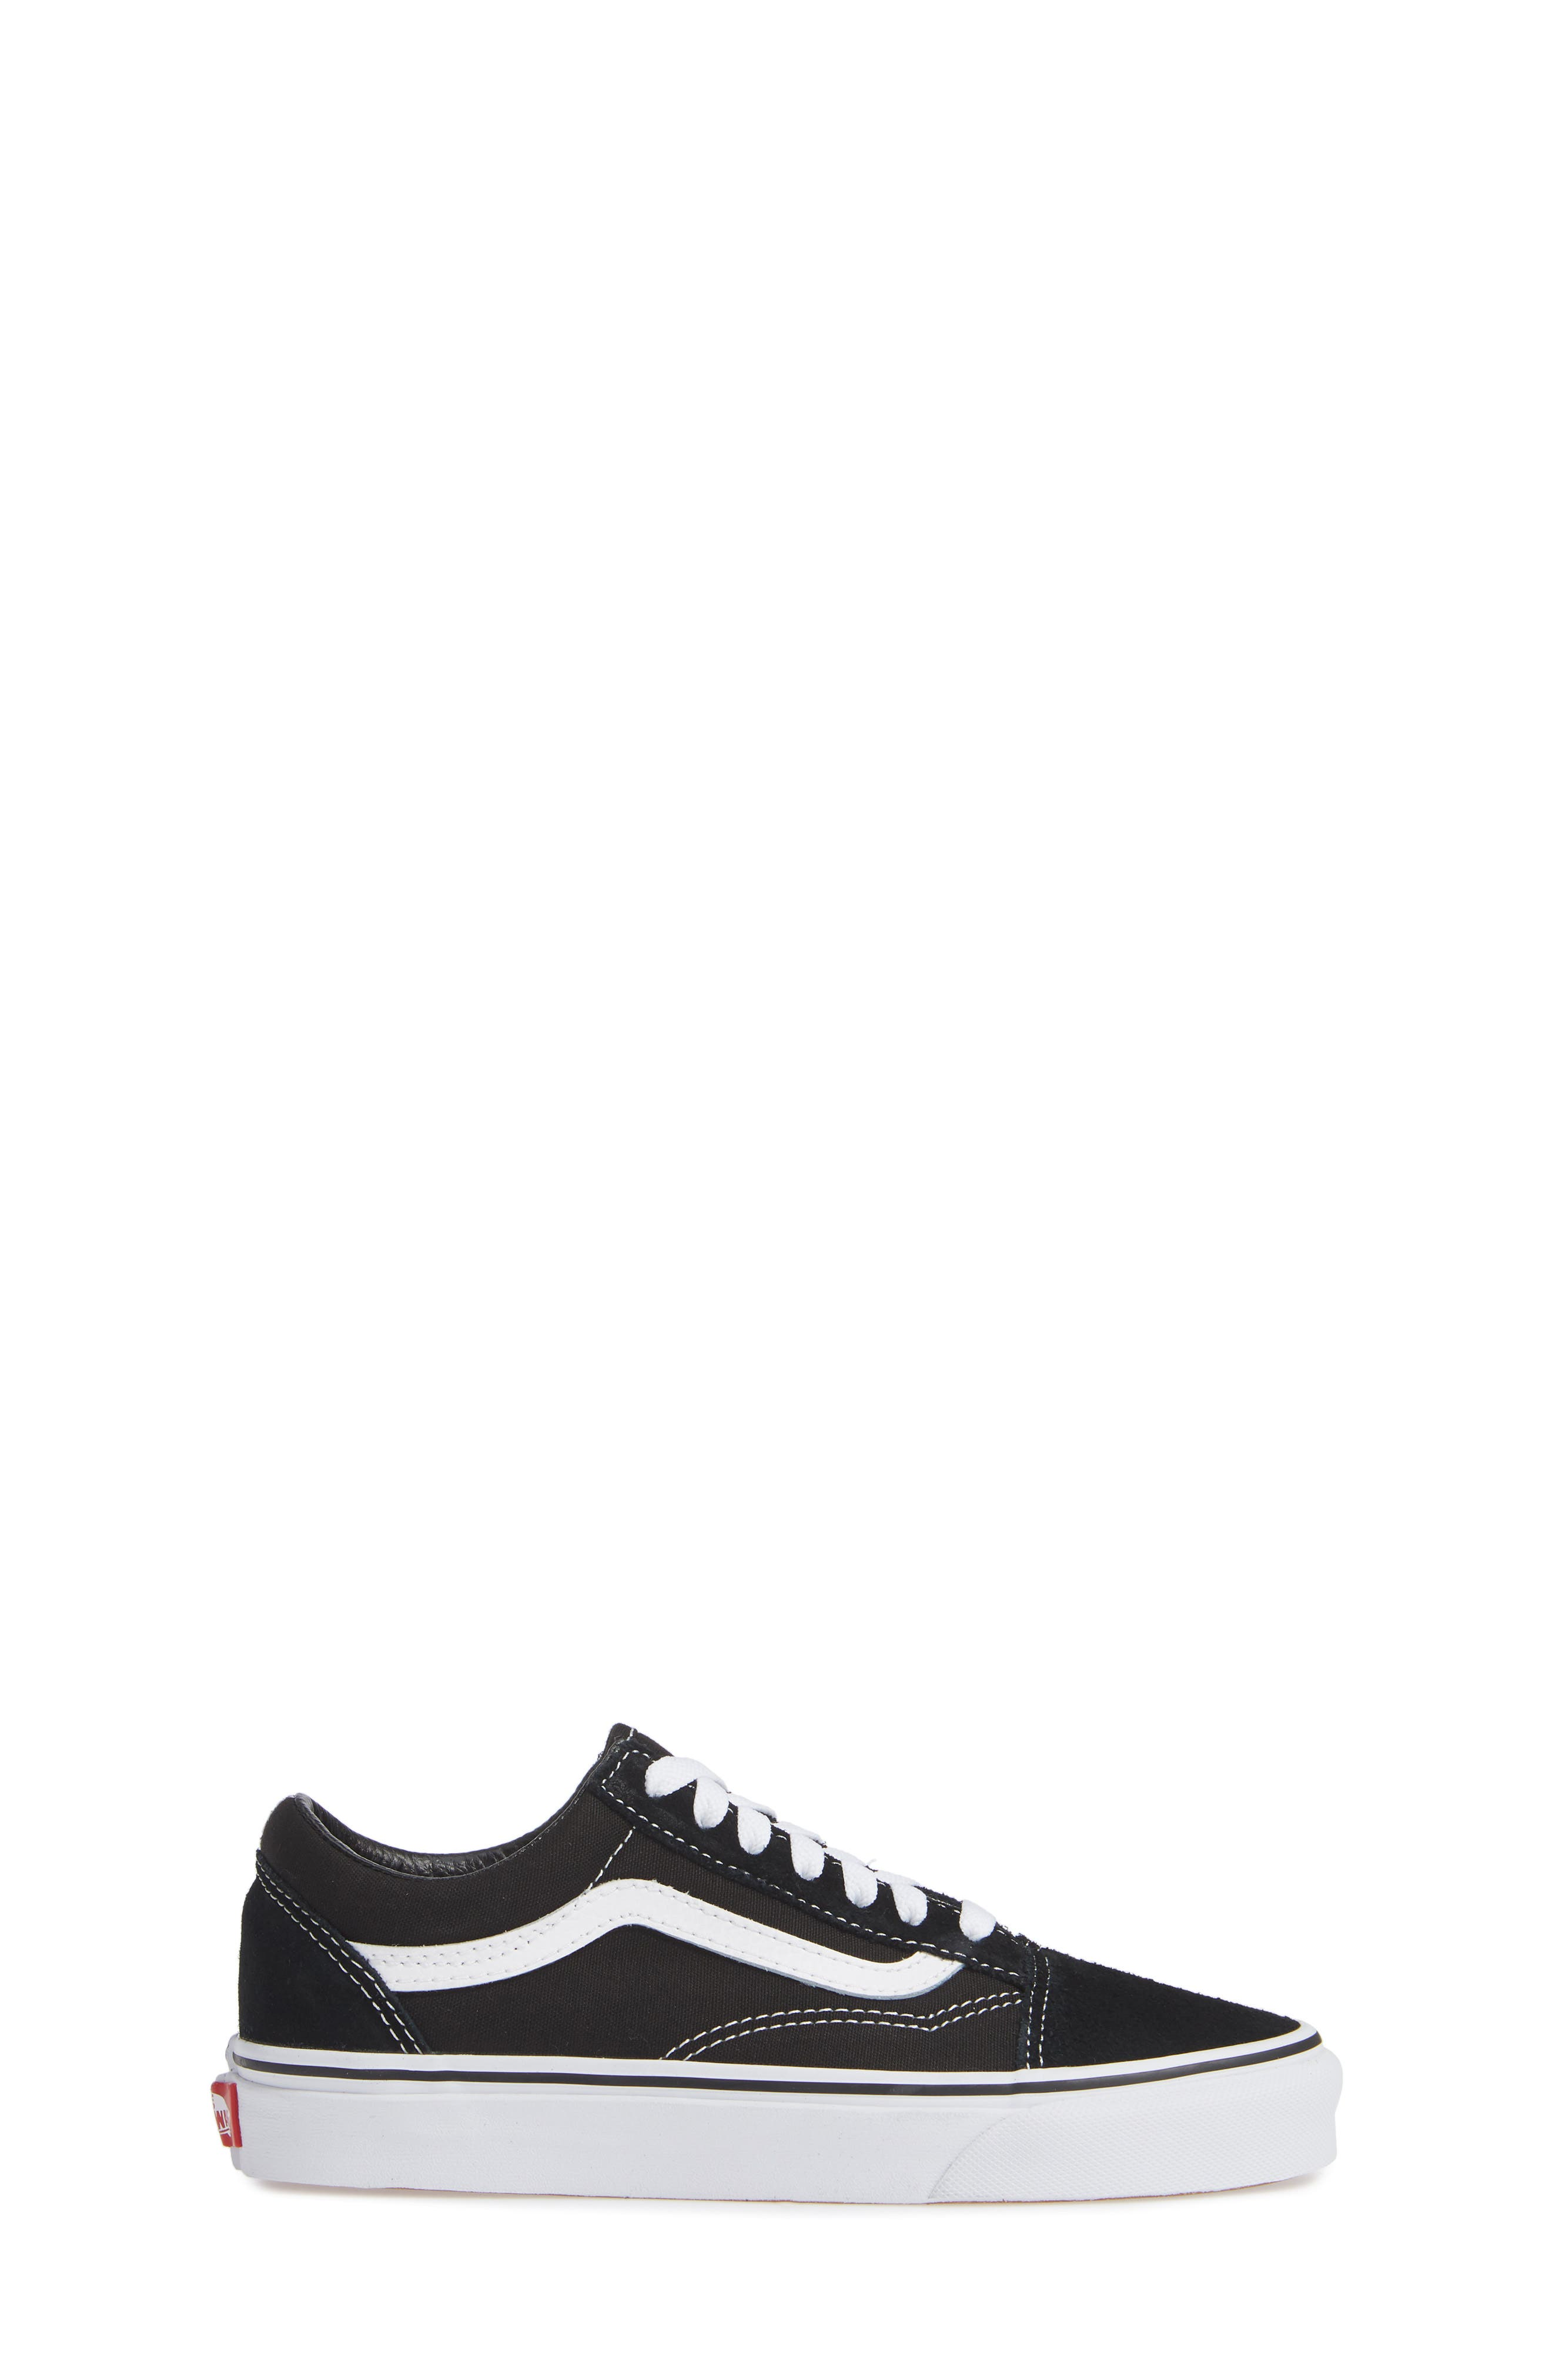 VANS, 'Old Skool' Skate Sneaker, Alternate thumbnail 3, color, BLACK/ WHITE SUEDE CANVAS